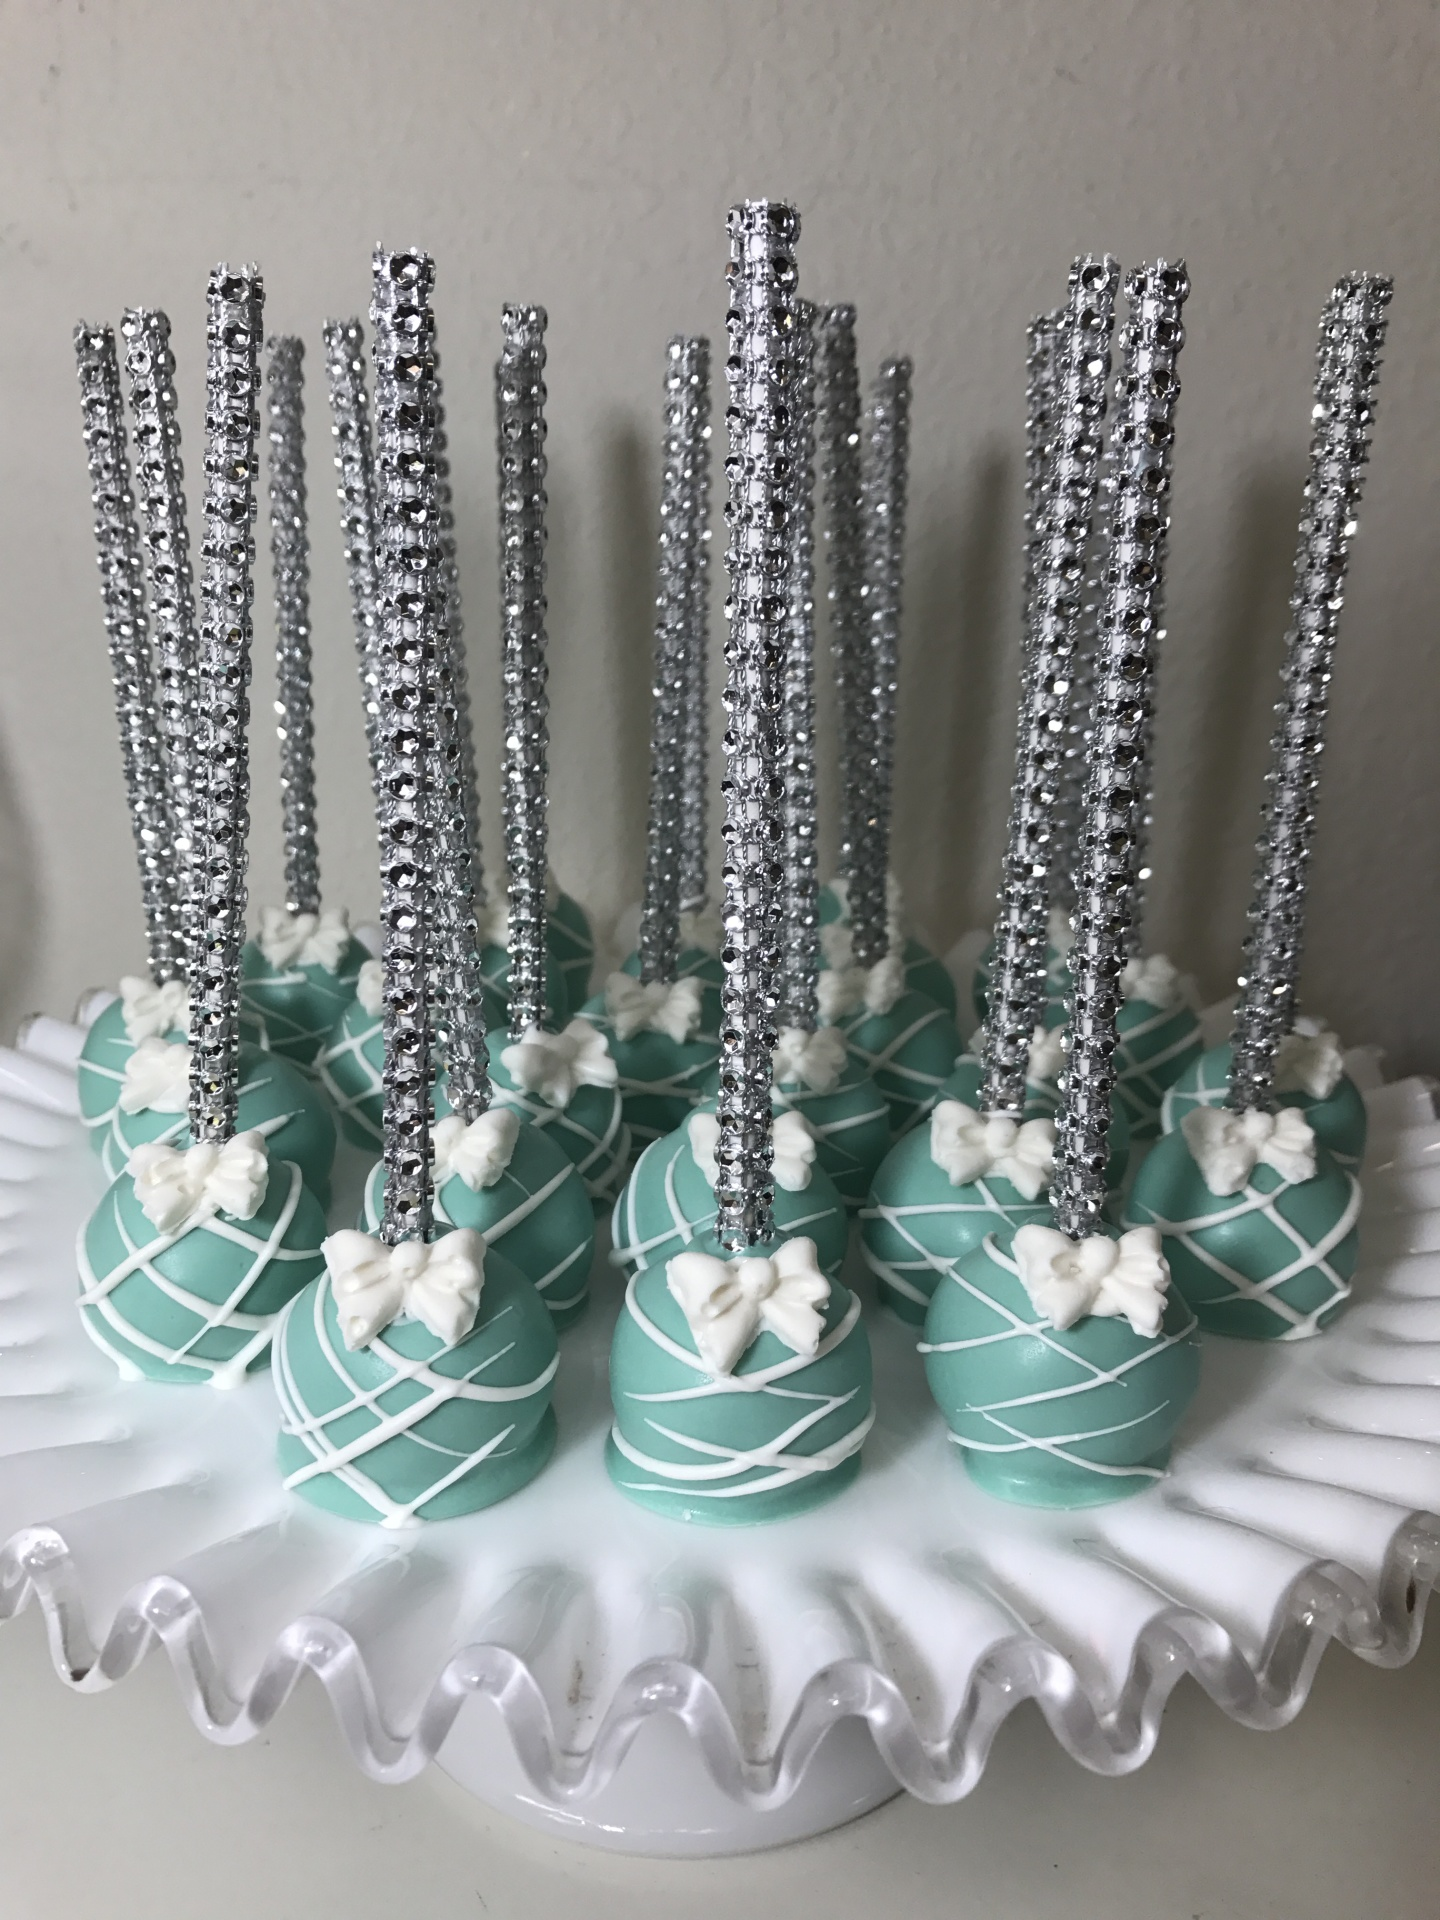 Tiffany Blue Cake Pops with Bling Stick